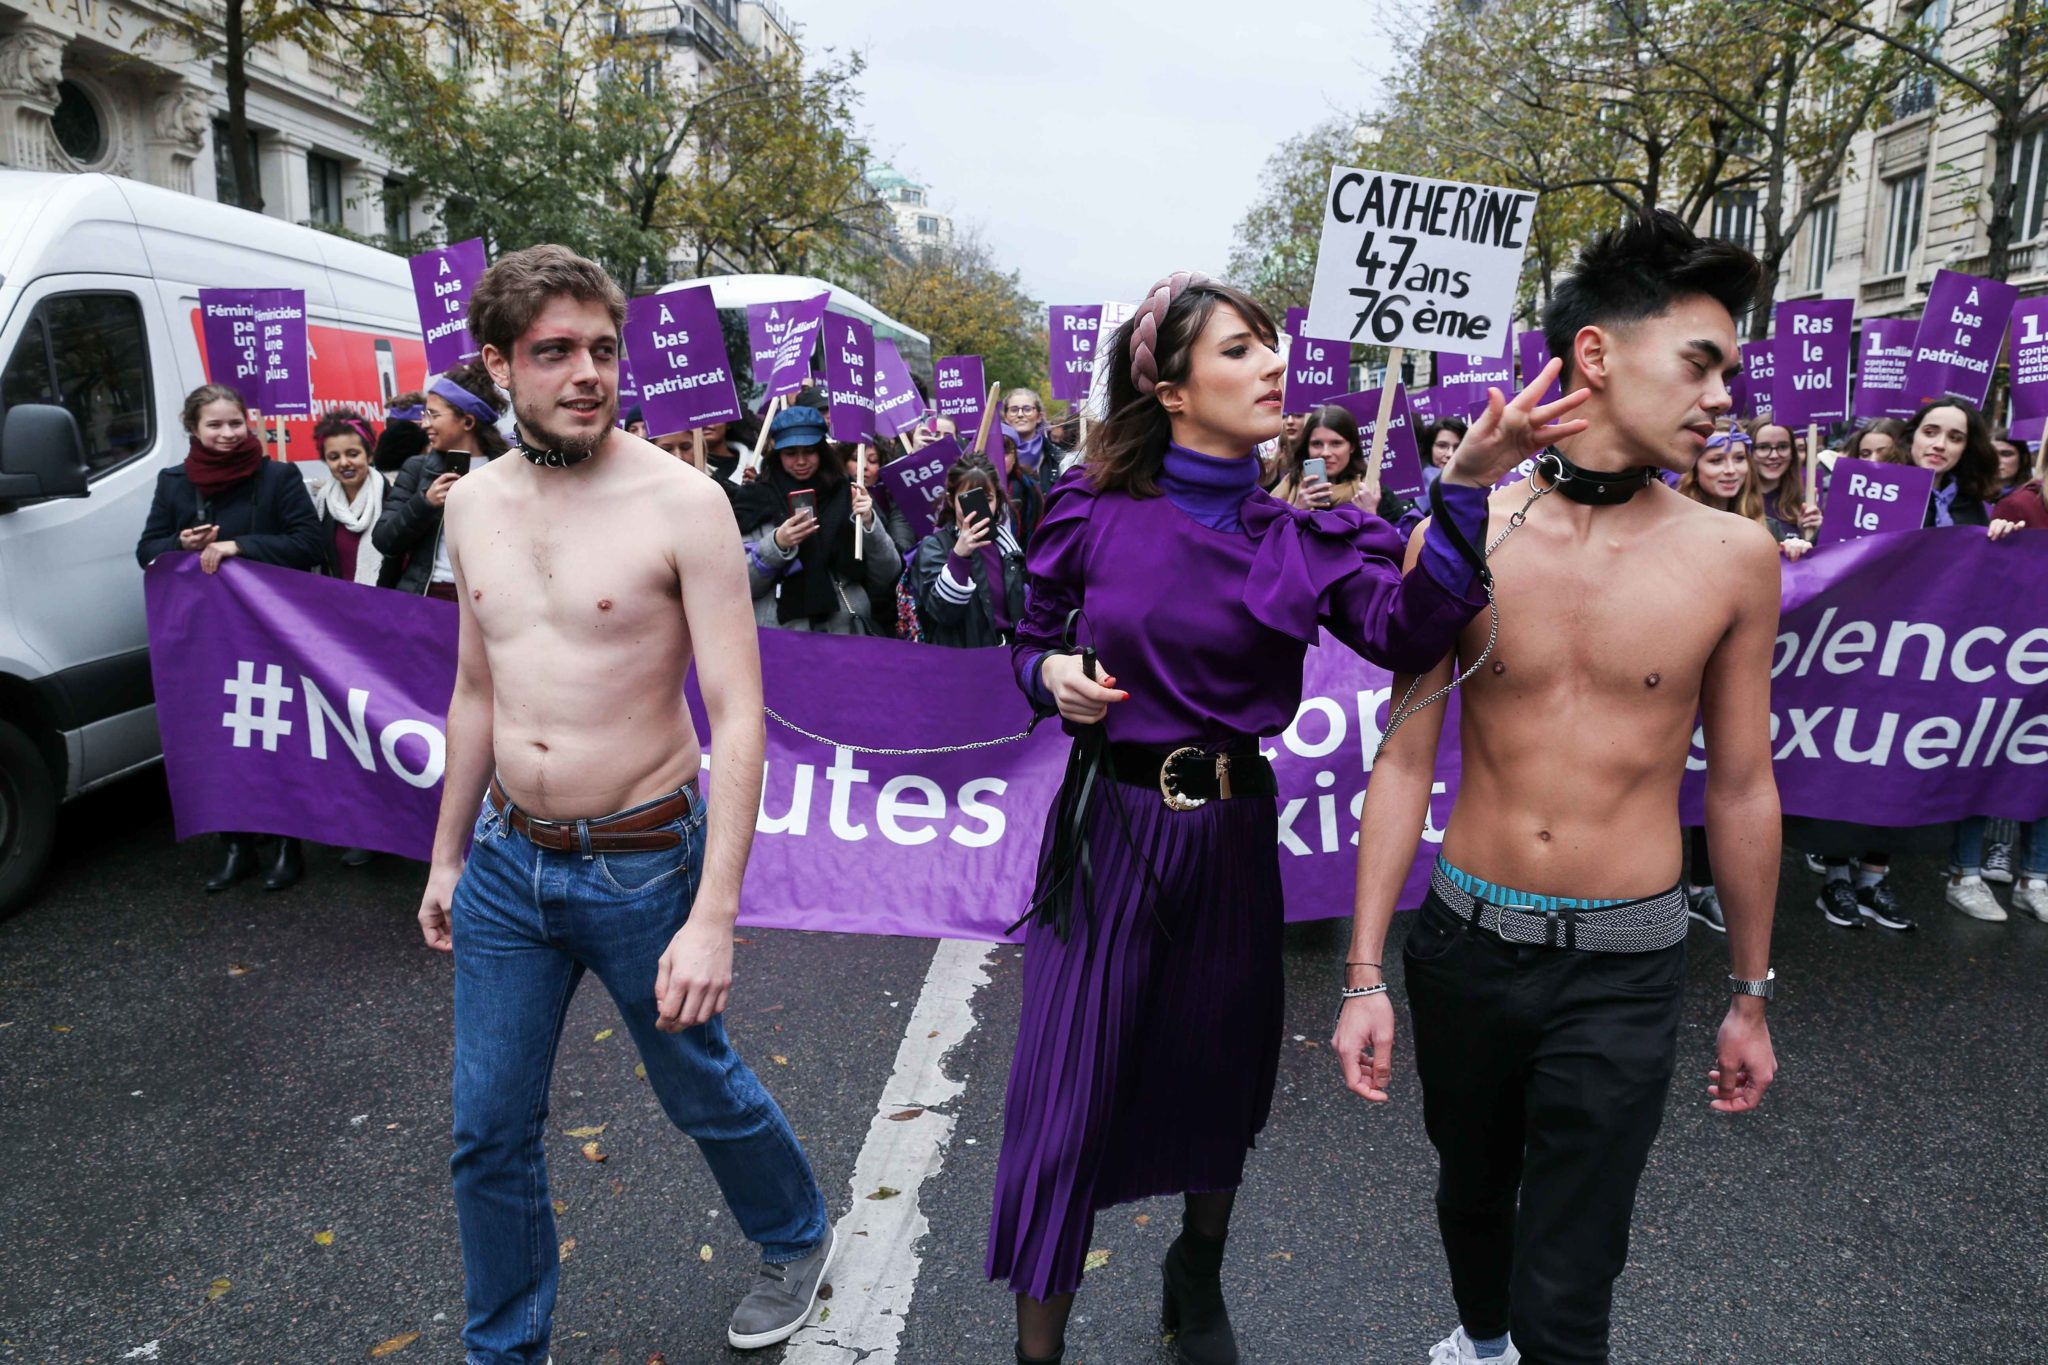 Men in chains are exposed during a protest to condemn violence against women, on November 23, 2019, in Paris. Wearing purple – the adopted colour of feminist struggles – activists are taking to the streets of Paris and other French cities to speak out